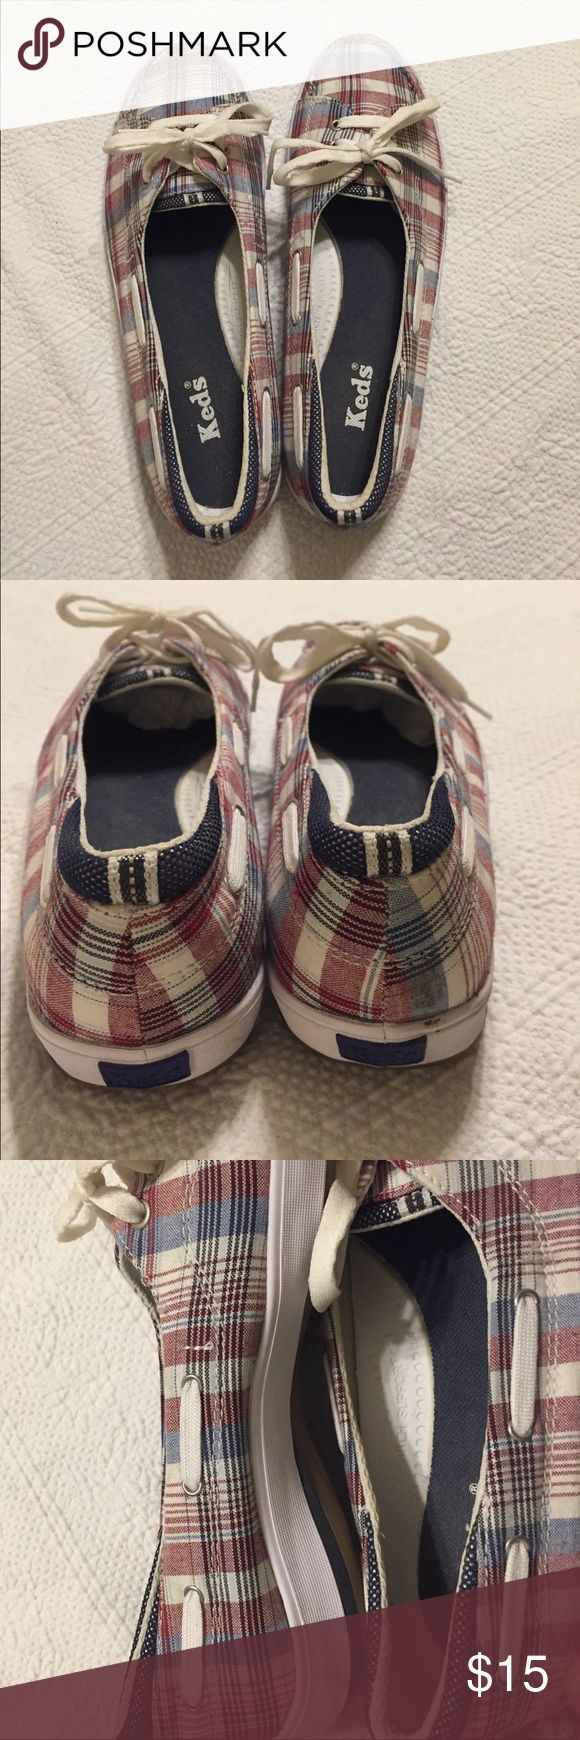 Keds Slip-ons Plaid Arch Support Red, white and blue plaid, cute slip-ons with arch support and gel-flex. Only worn a couple of times. Size 8.5. Keds Shoes Sneakers